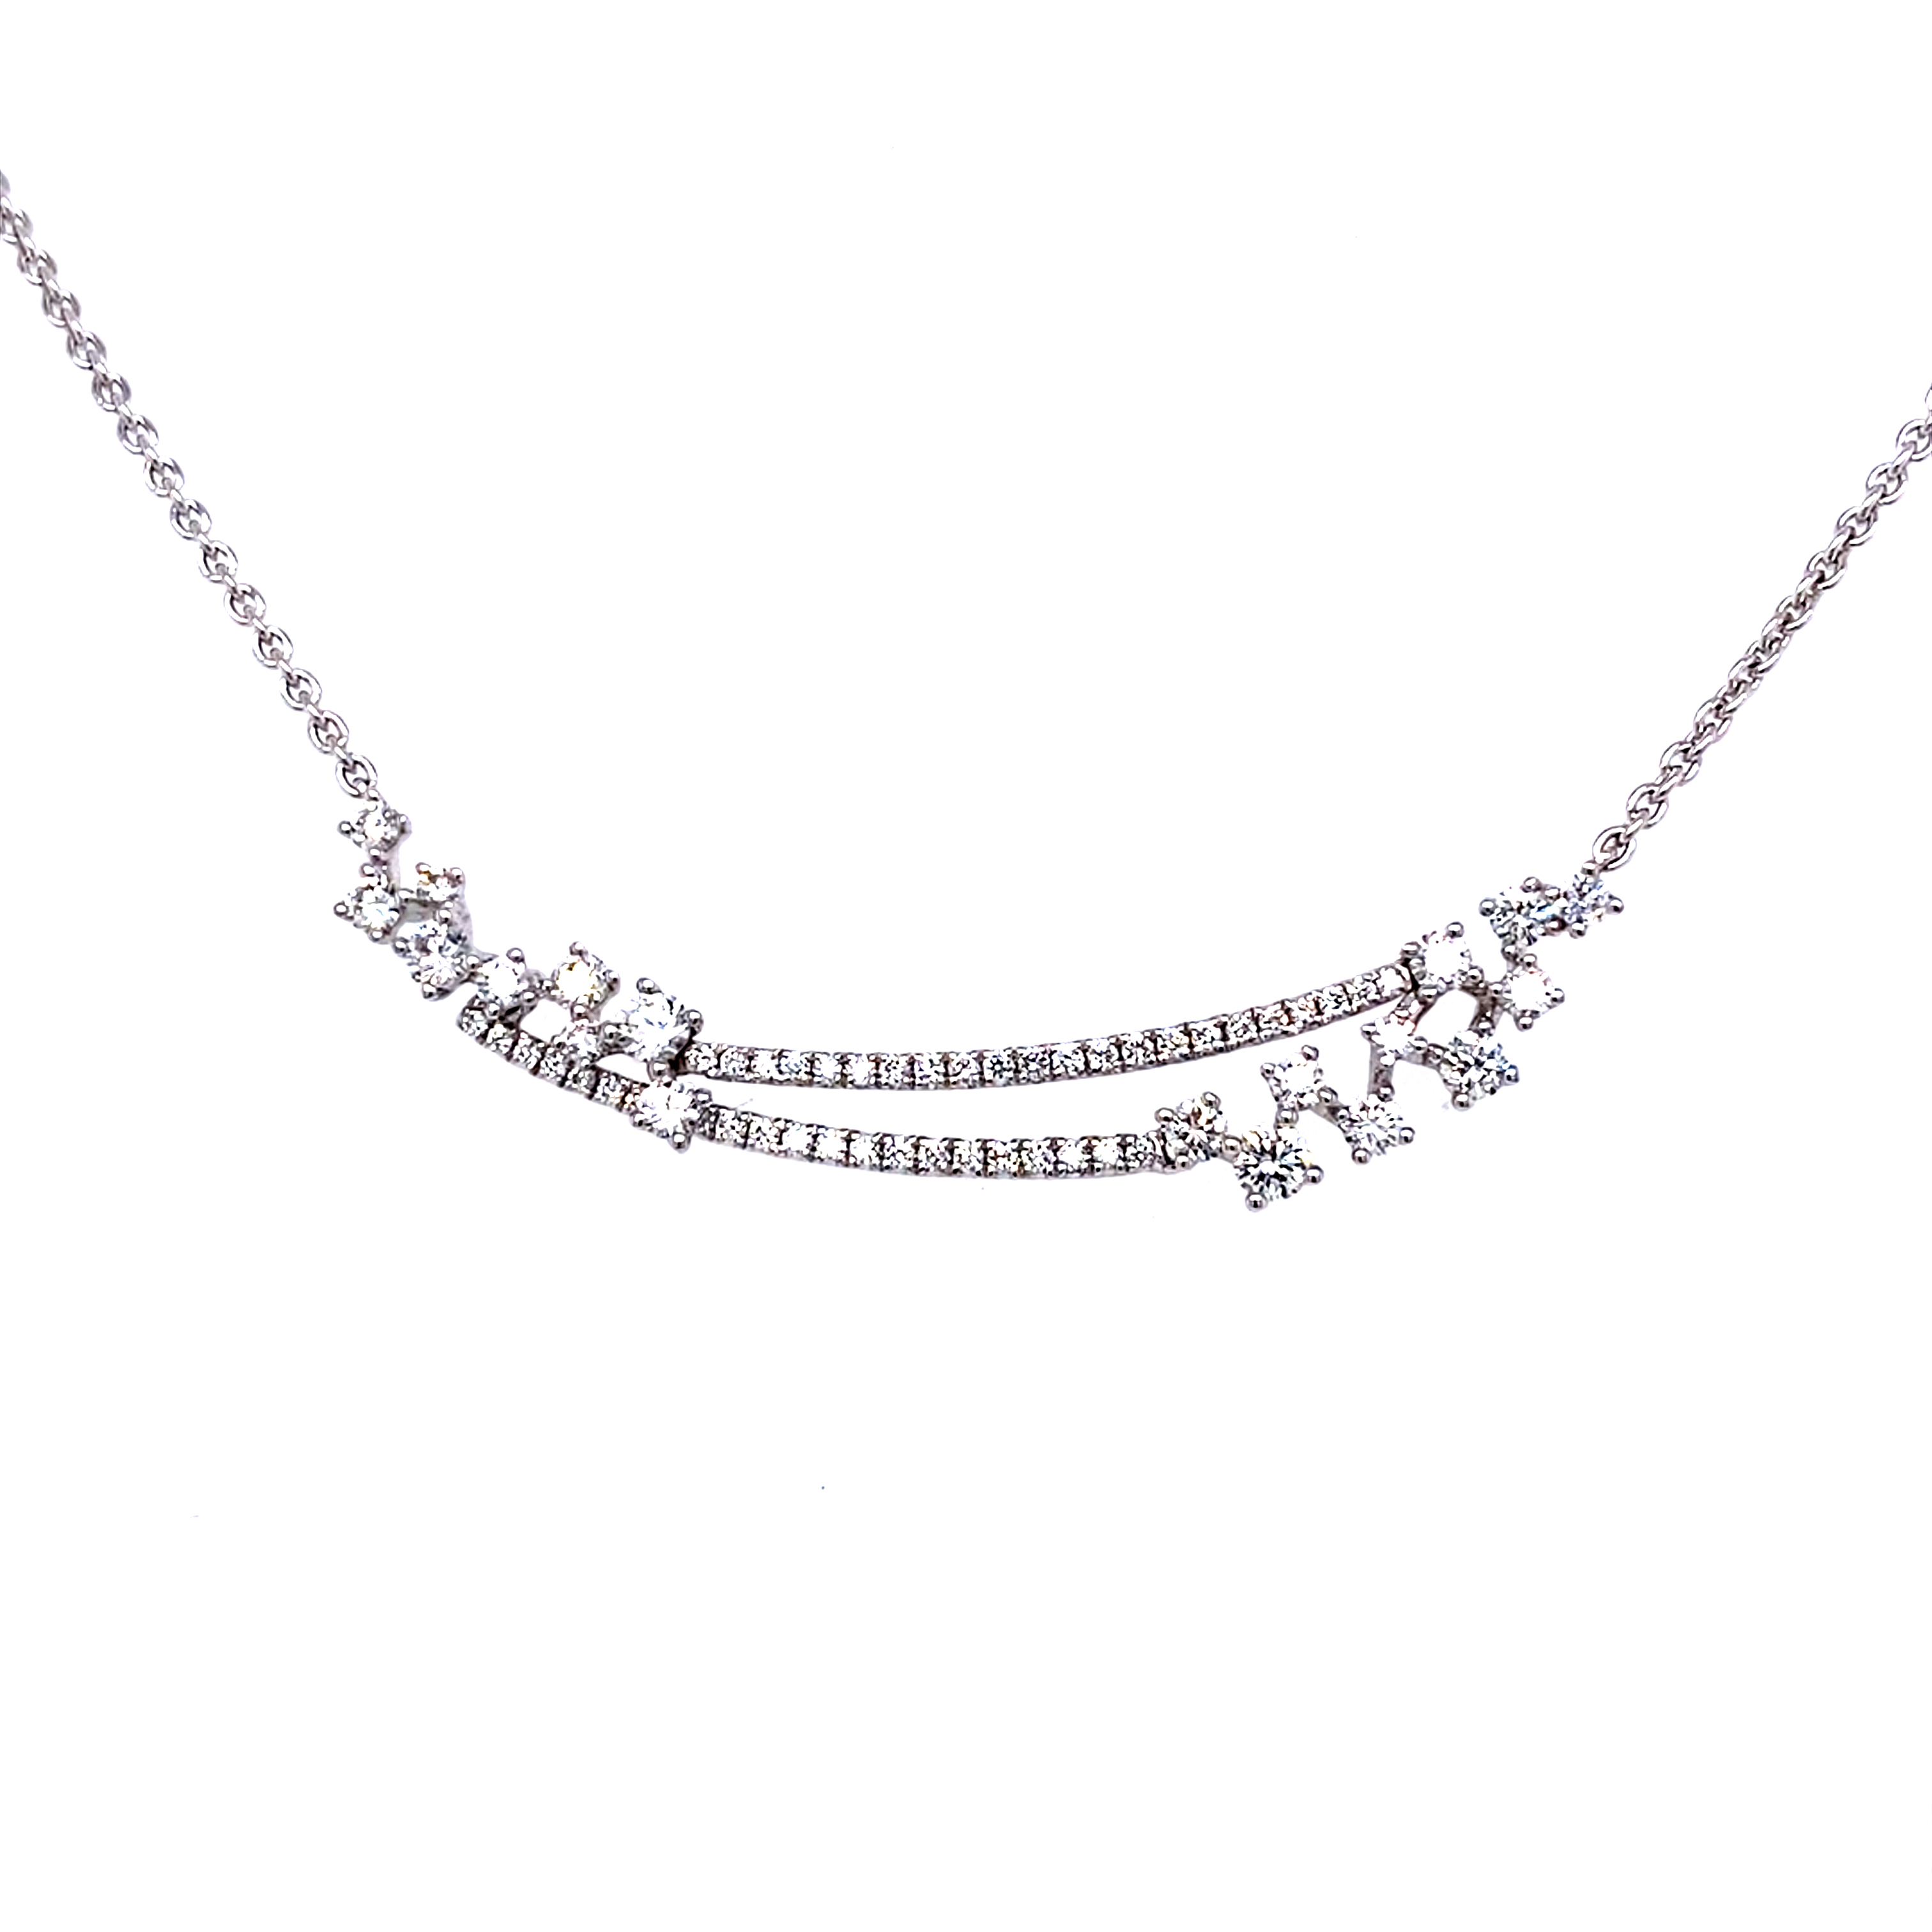 18ct White Gold Constellation Necklet - 0.79Cts